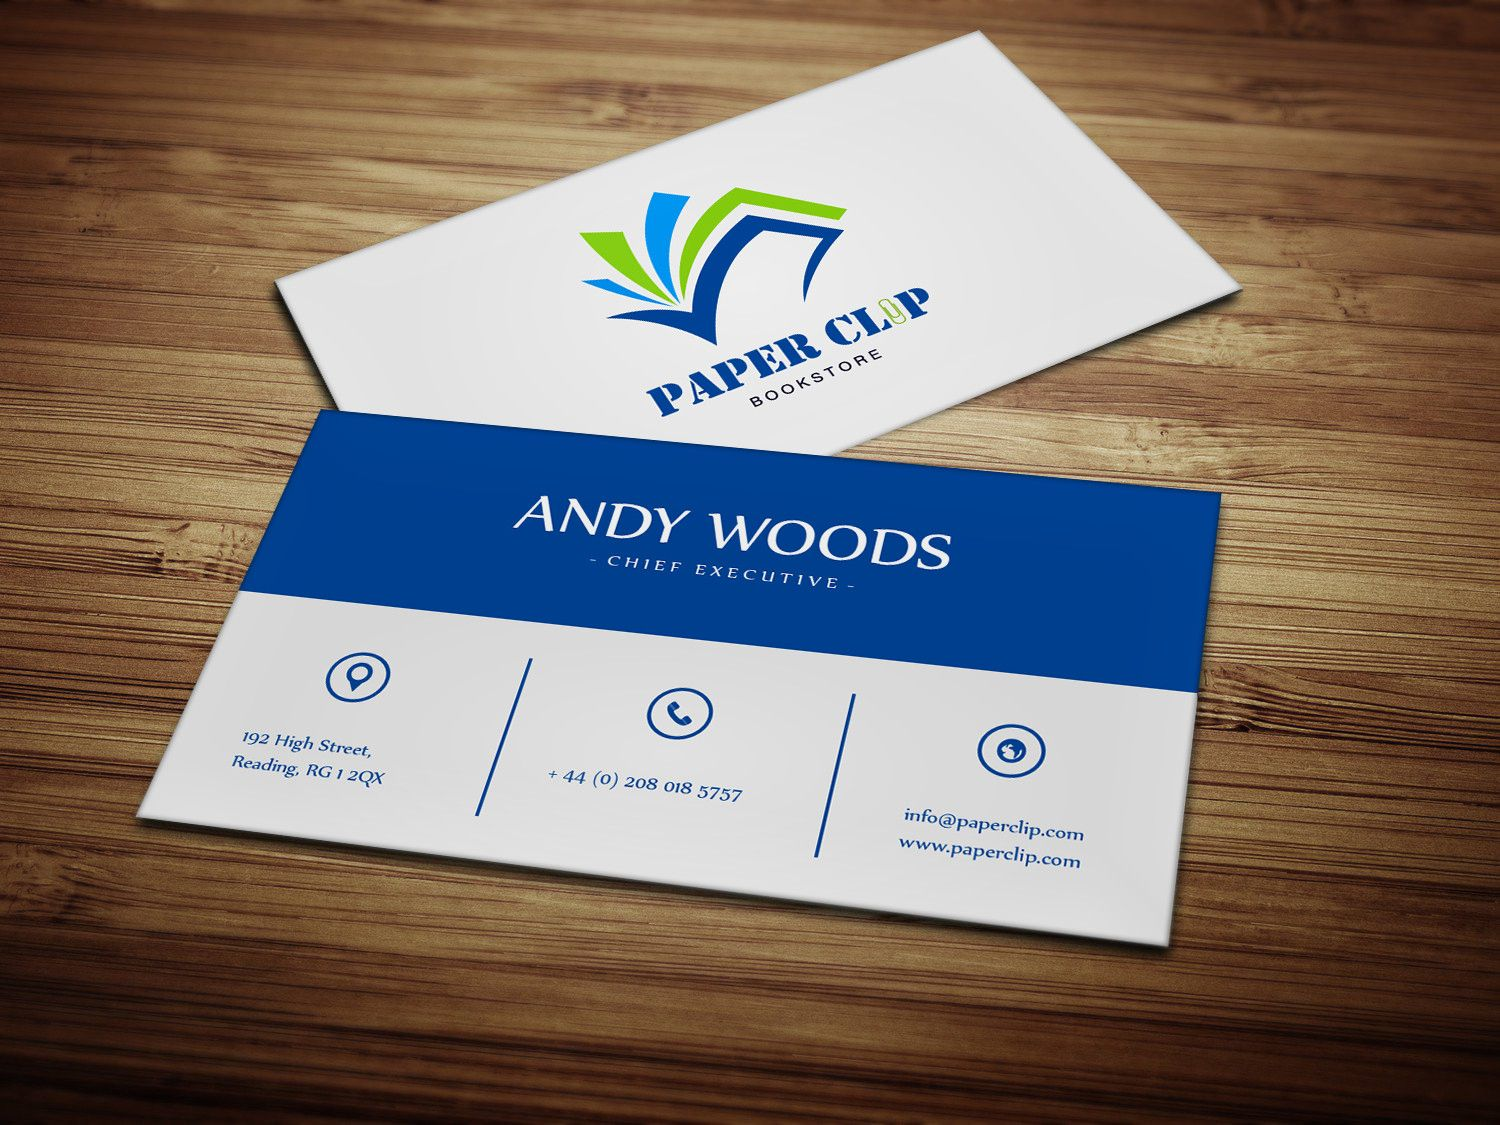 Design creative and professional business card | Business cards ...